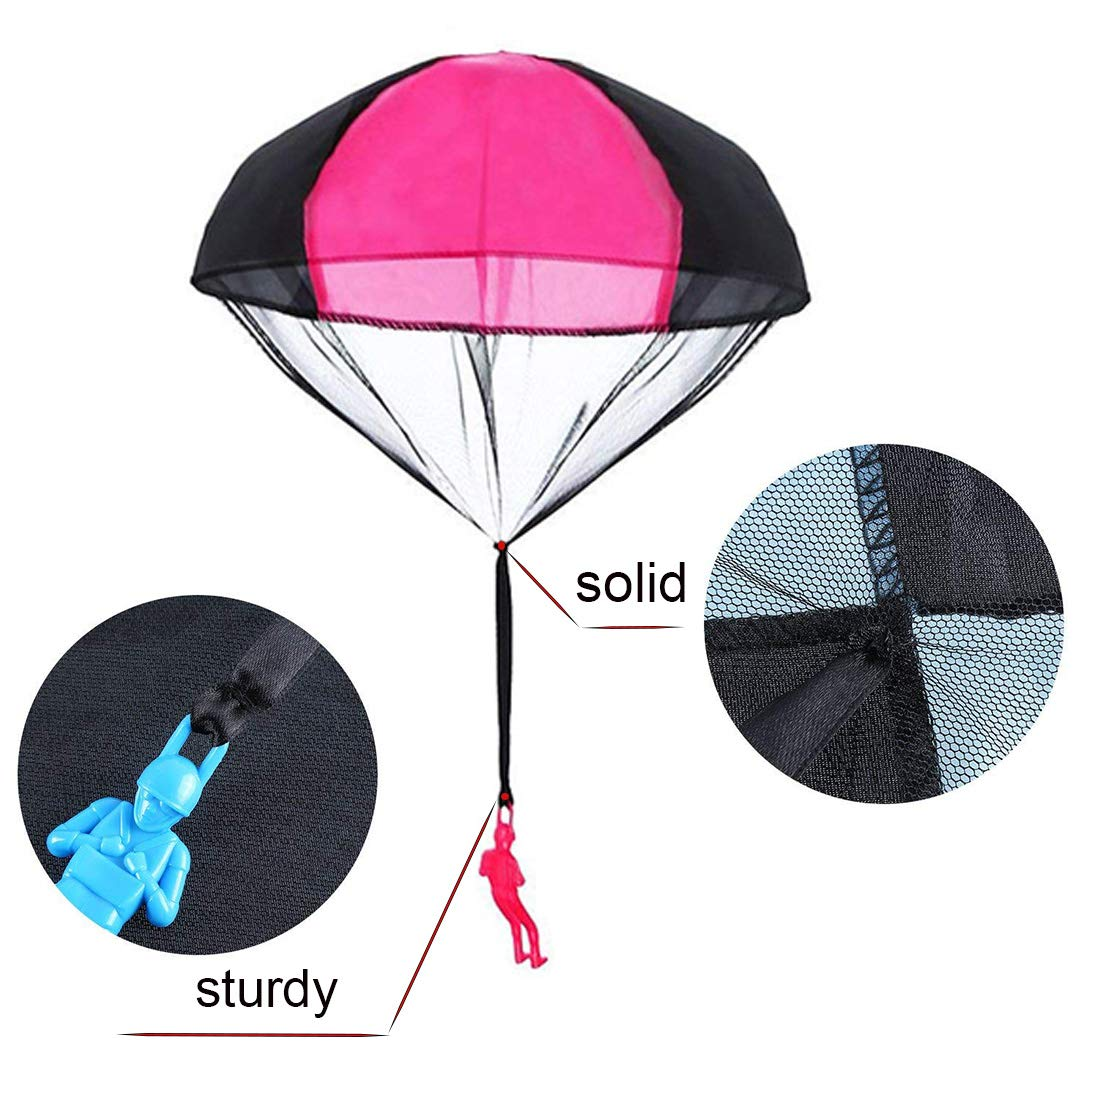 Huihui Decoration 7 Pieces Parachute Toys,Tangle Free Parachute Men Throwing Hand Throw Soldiers Toss It Up and Watching Landing Outdoor Parachute for Kids by Huihui Decoration (Image #3)